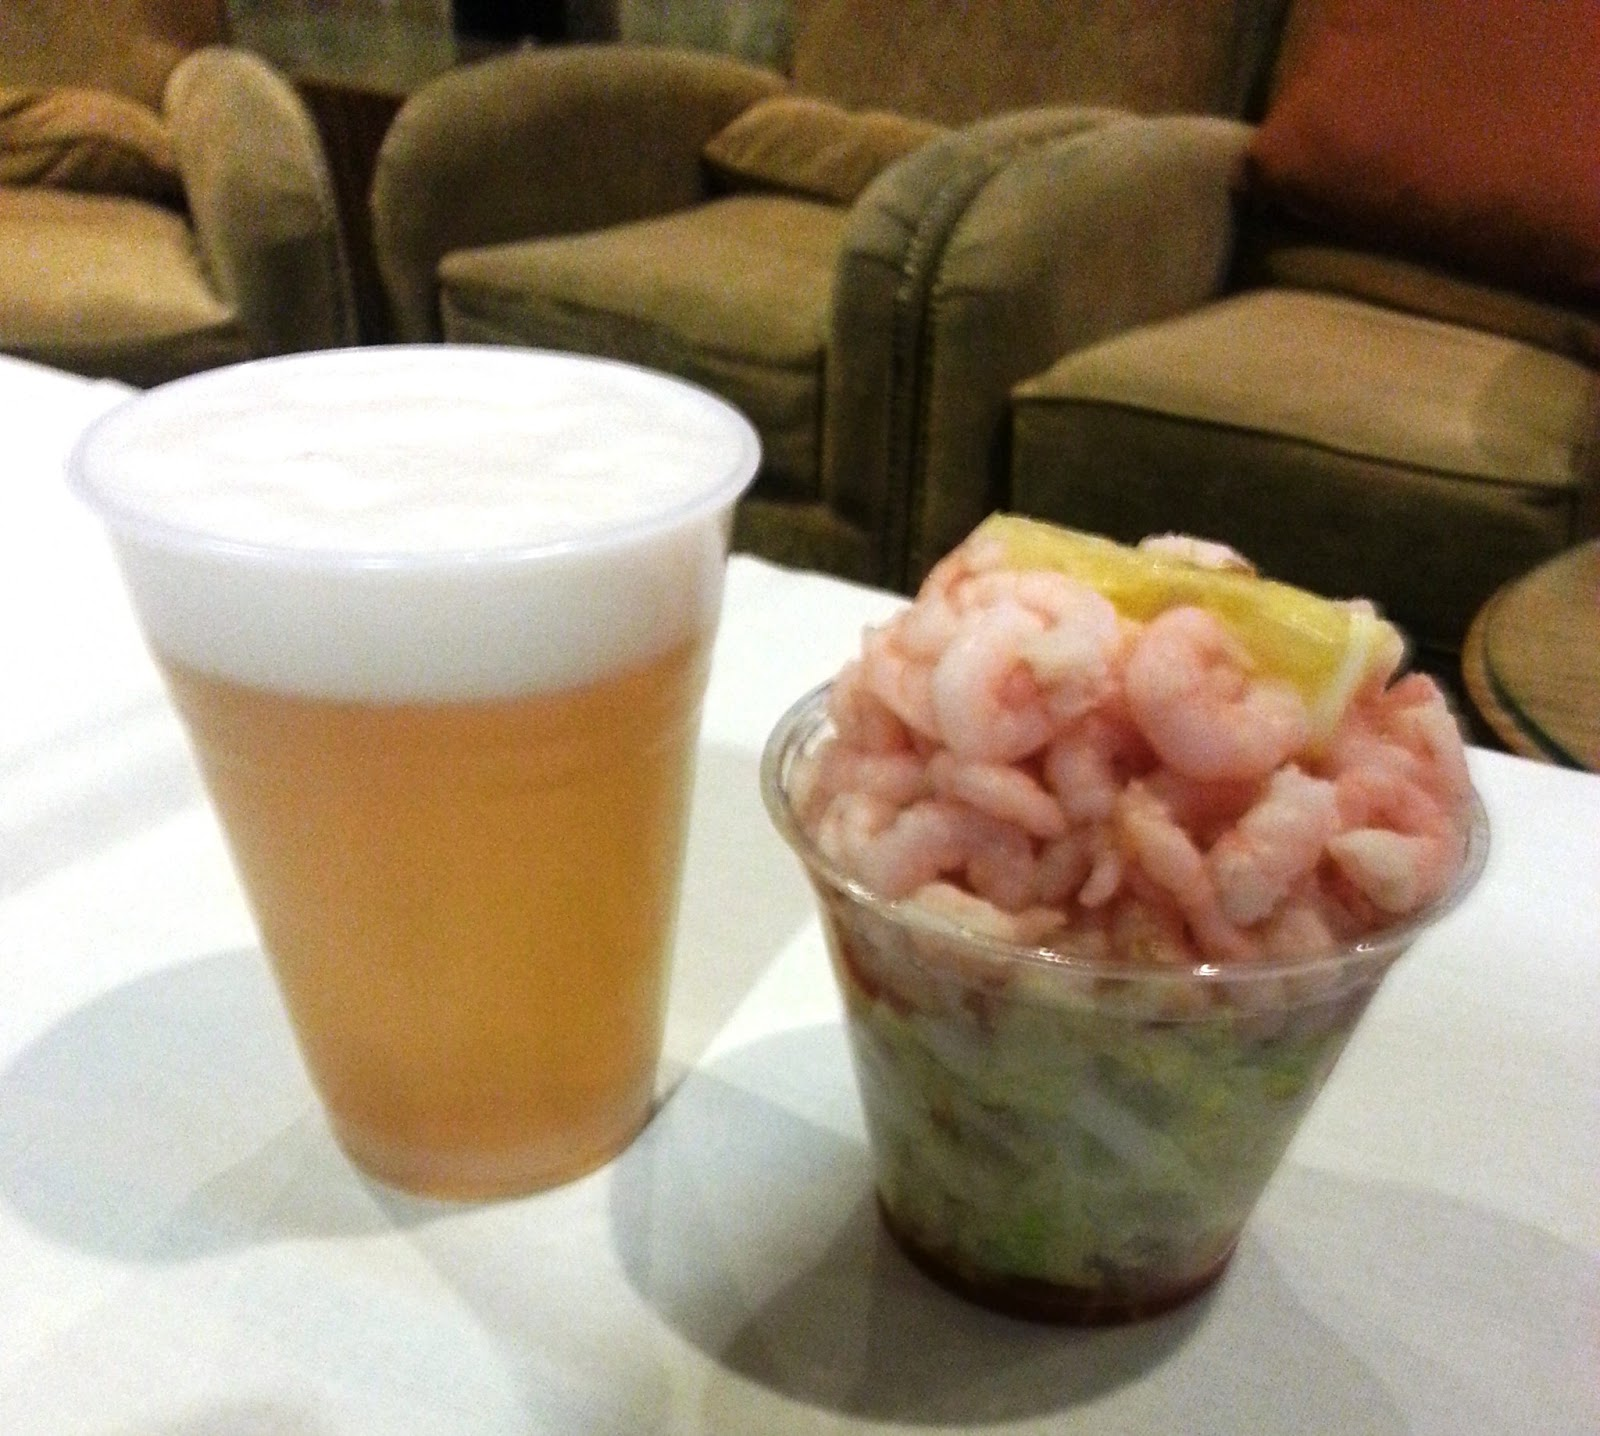 PBR And A Shrimp Cocktail For 99 Cents No Longer Available